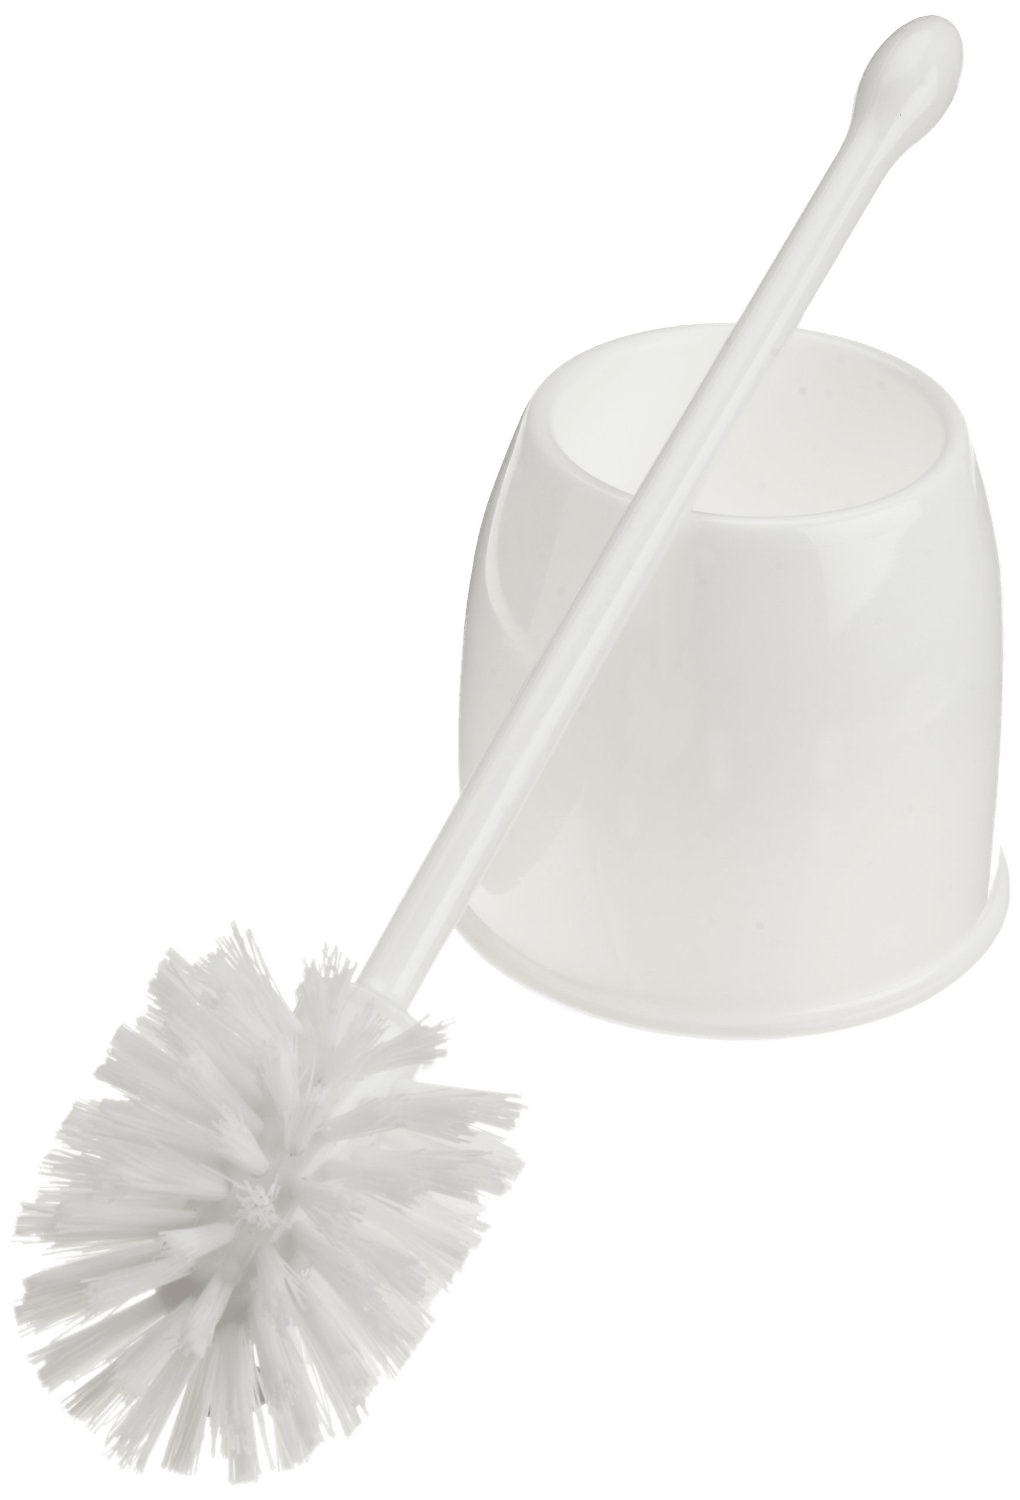 Toilet Brush White Transparent PNG